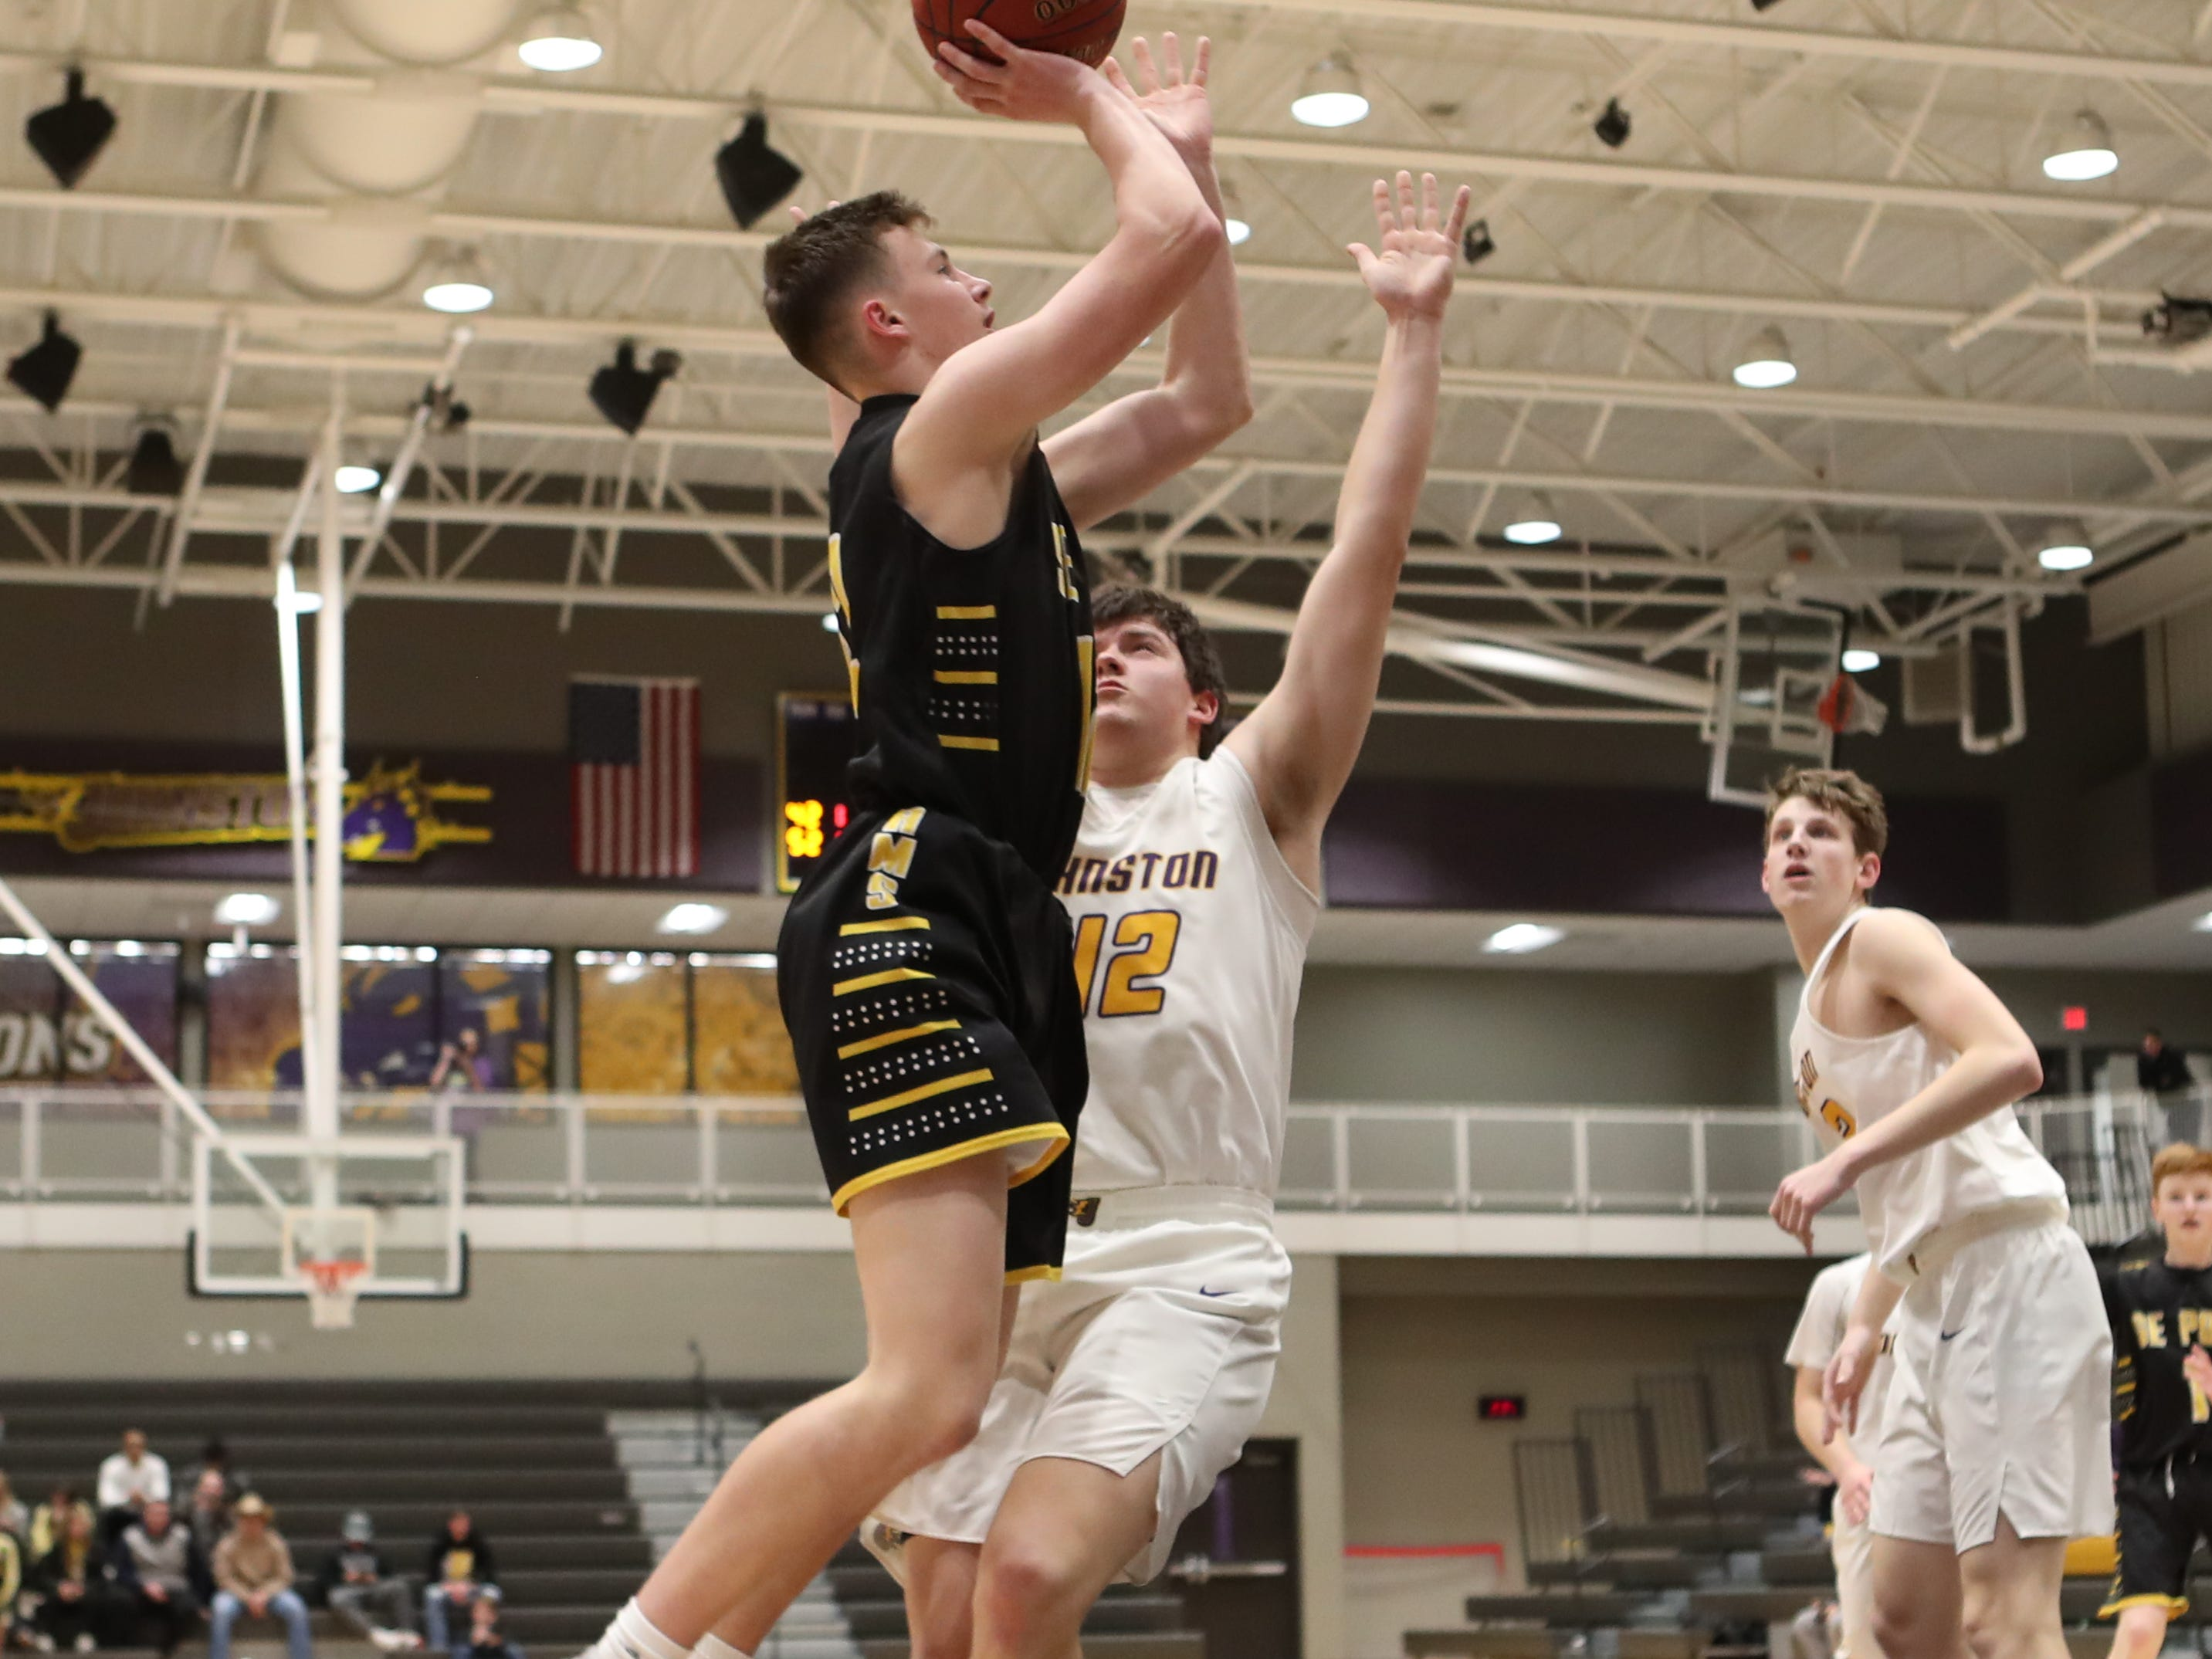 Southeast Polk's Fred Johnson (12) shoots over the top of the Johnston defense in a Feb. 5 game at Johnston High School. Johnston won the game 51-44.